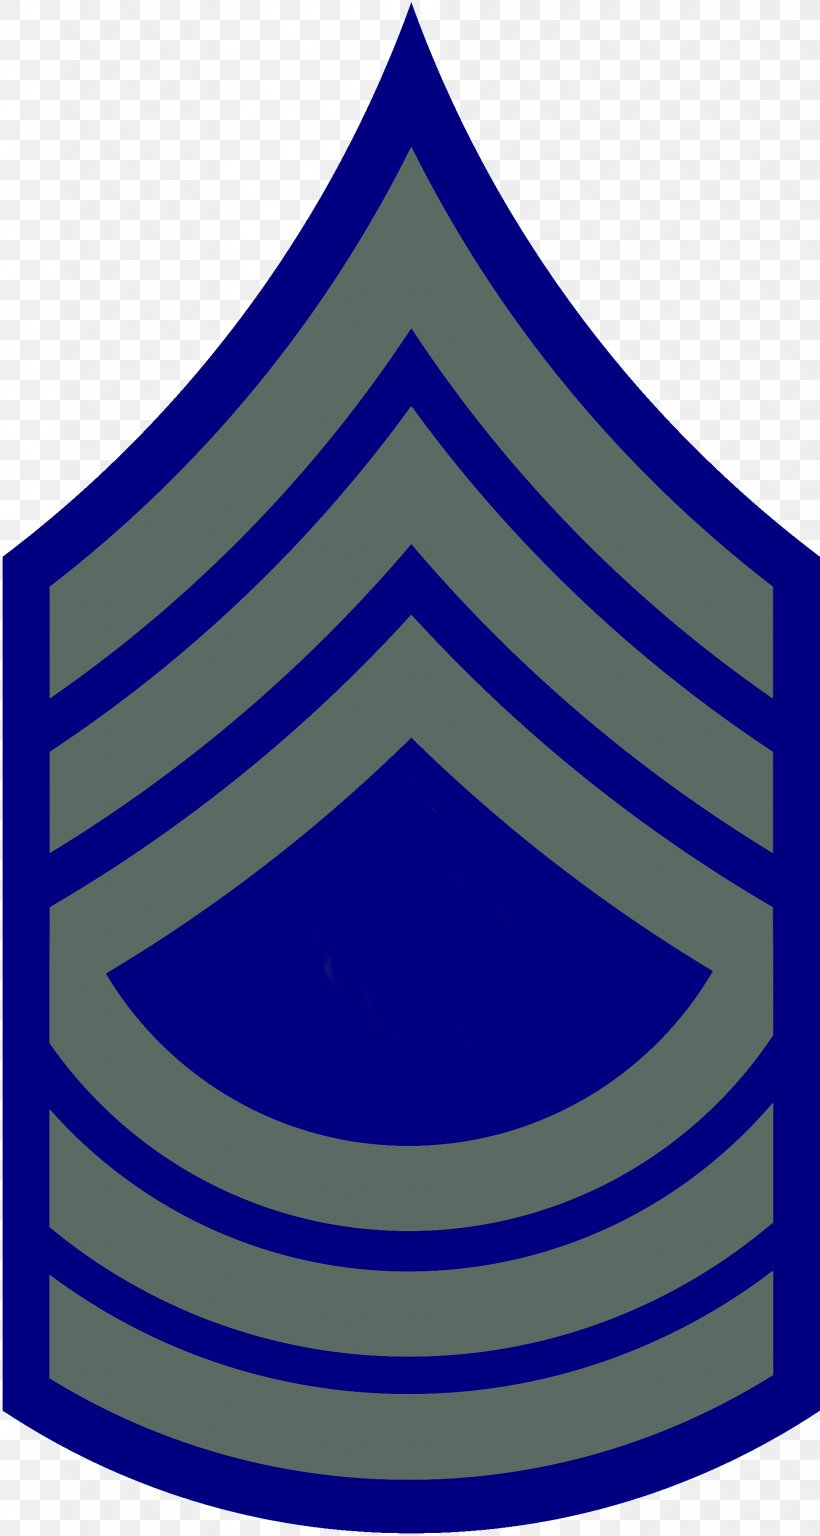 Master Sergeant Military Rank Staff Sergeant Sergeant First Class, PNG, 1876x3516px, Master Sergeant, Area, Army, Army Combat Uniform, Electric Blue Download Free